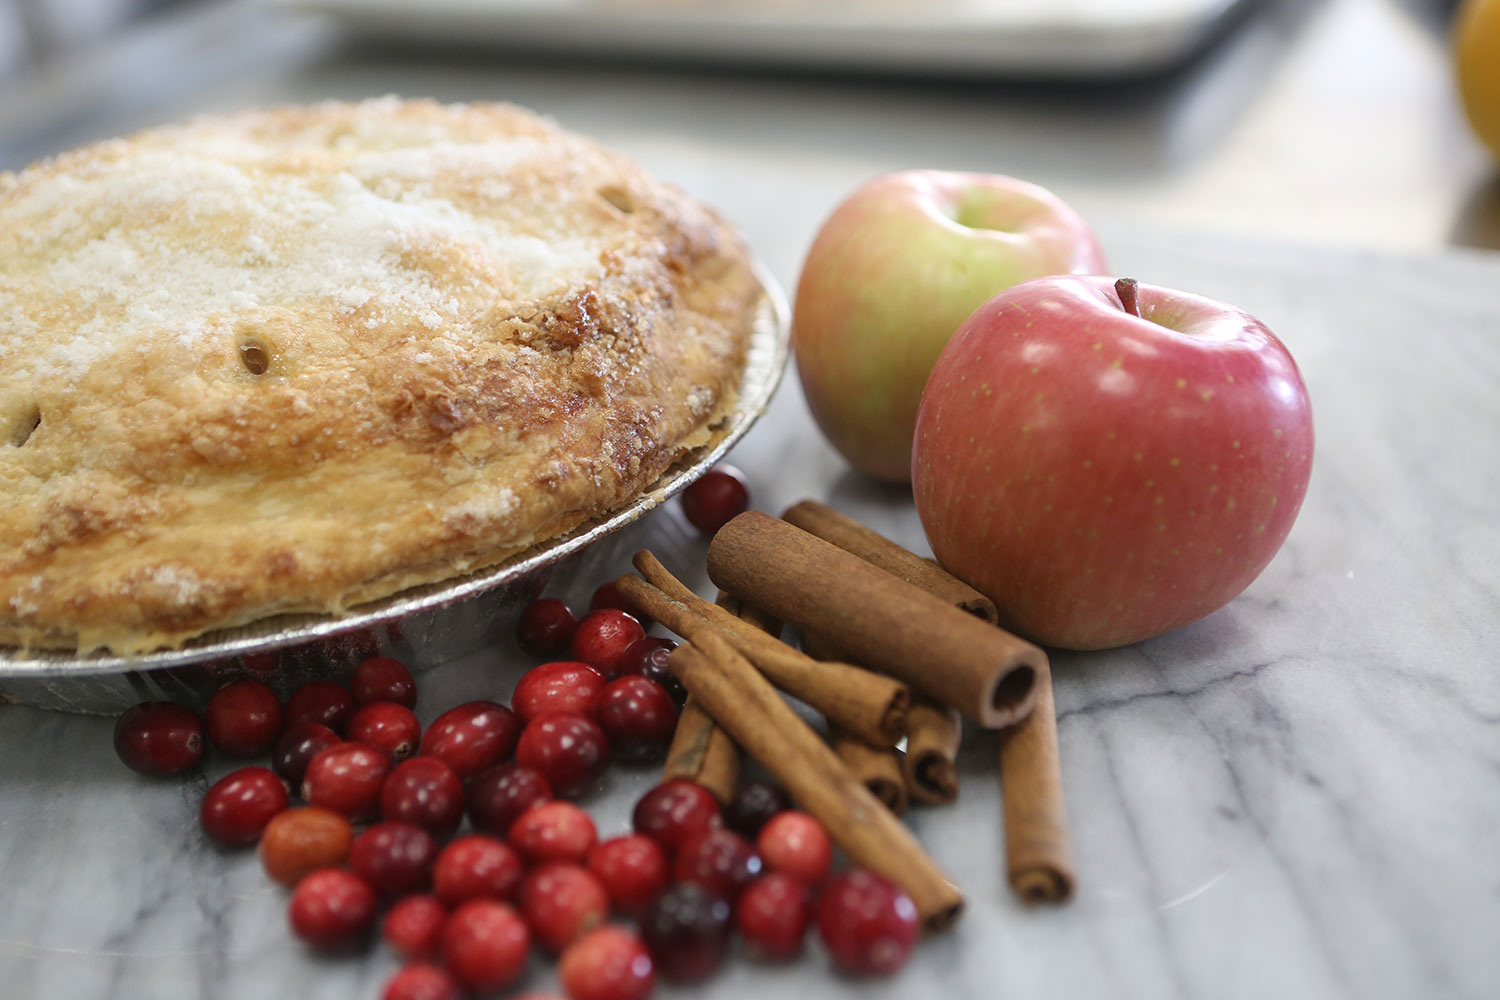 A Cranberry-apple pie with cranberries, apples, and cinnamon sticks placed to the side.